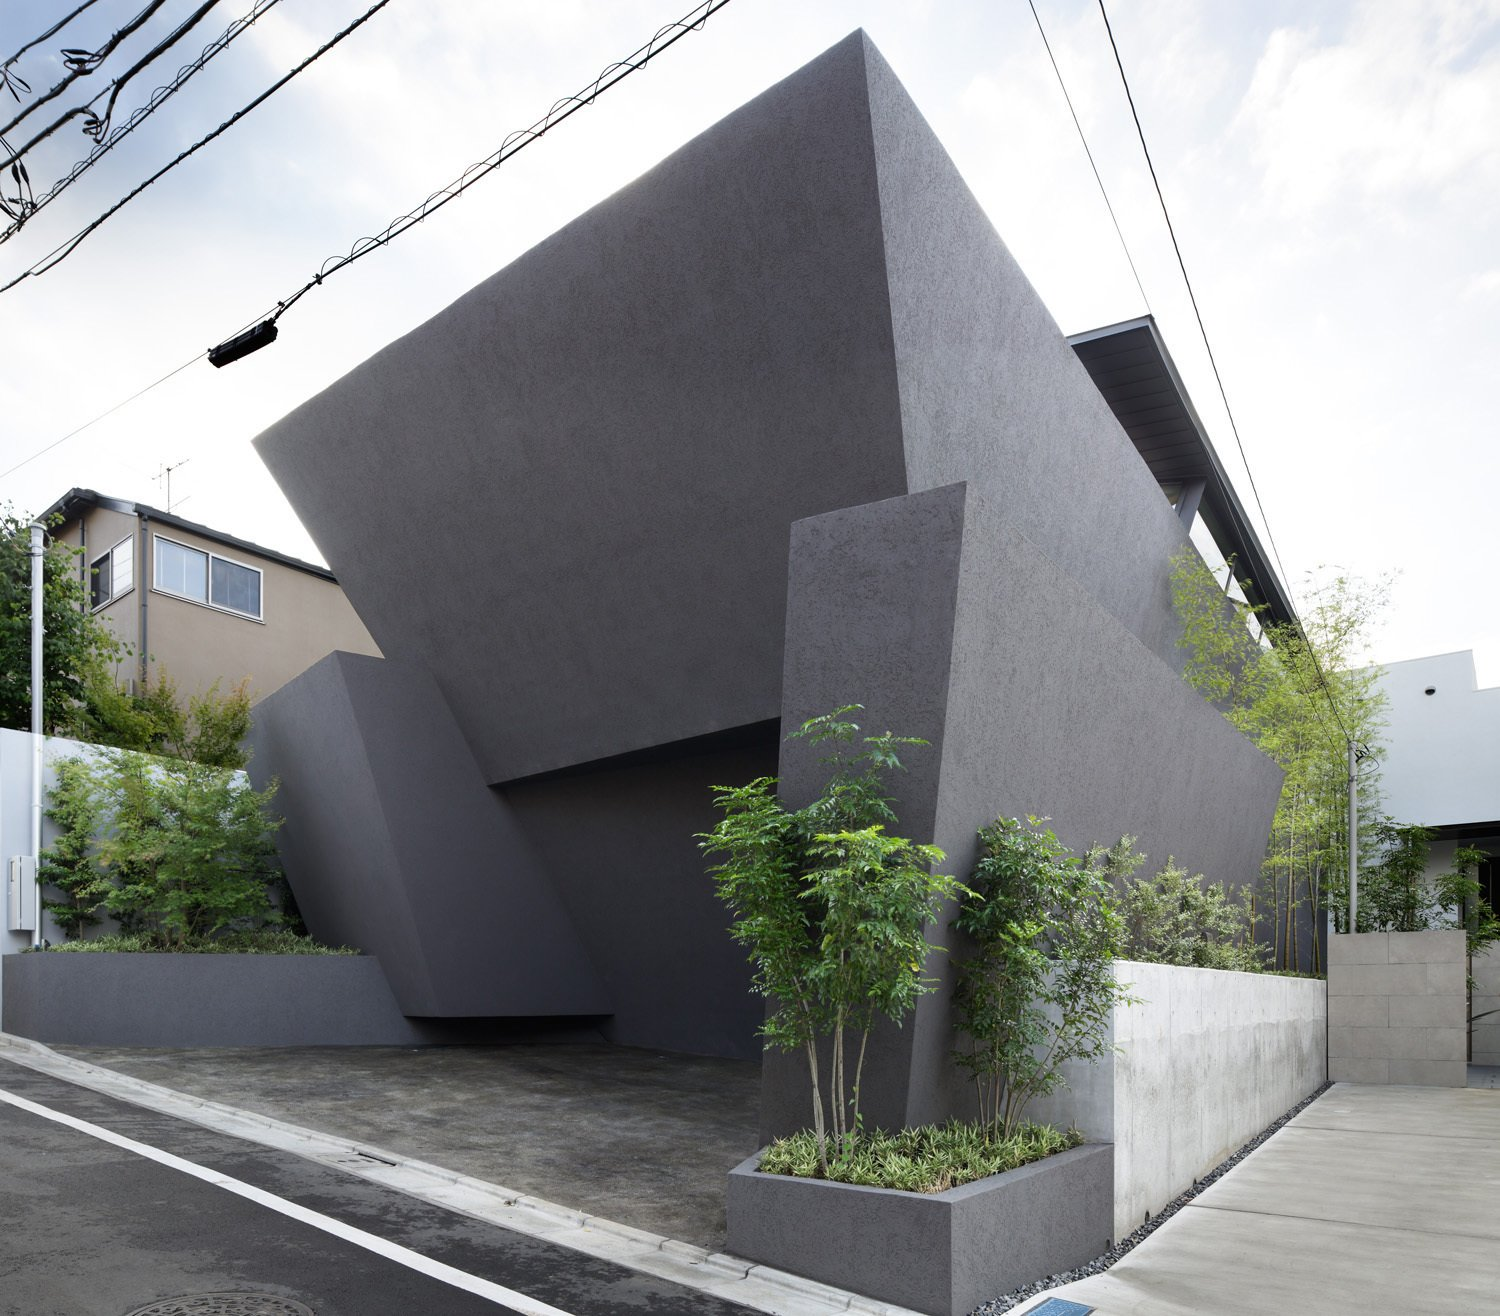 Concrete planters frame the facade—a union of monolithic slabs that offers privacy and compositional integrity to the building. The exterior is a plaster finish over insulation and concrete. Japanese Homes by Dwell